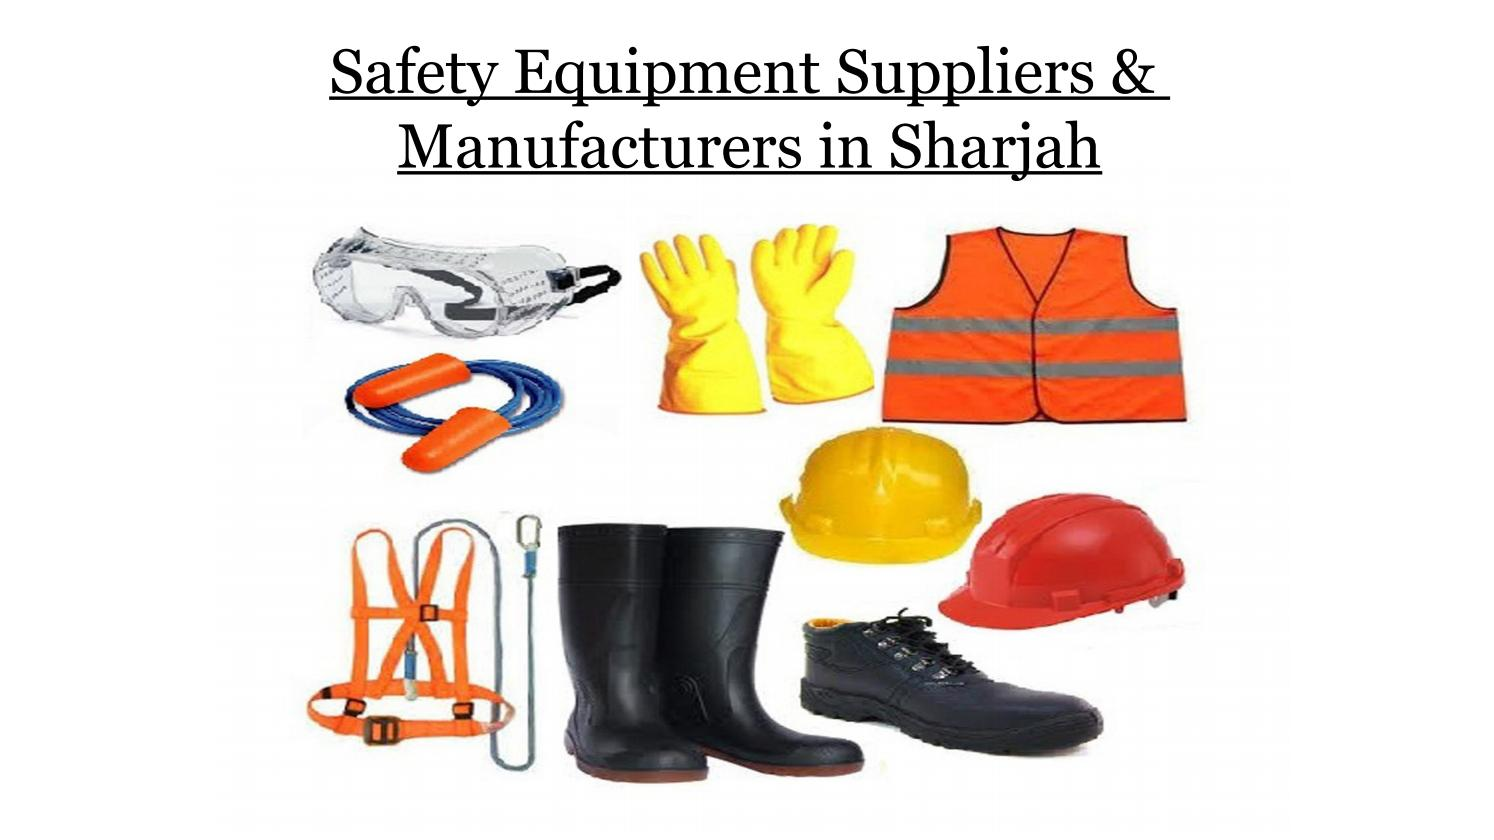 Industrial Safety Equipment in Sharjah by Lucia - issuu